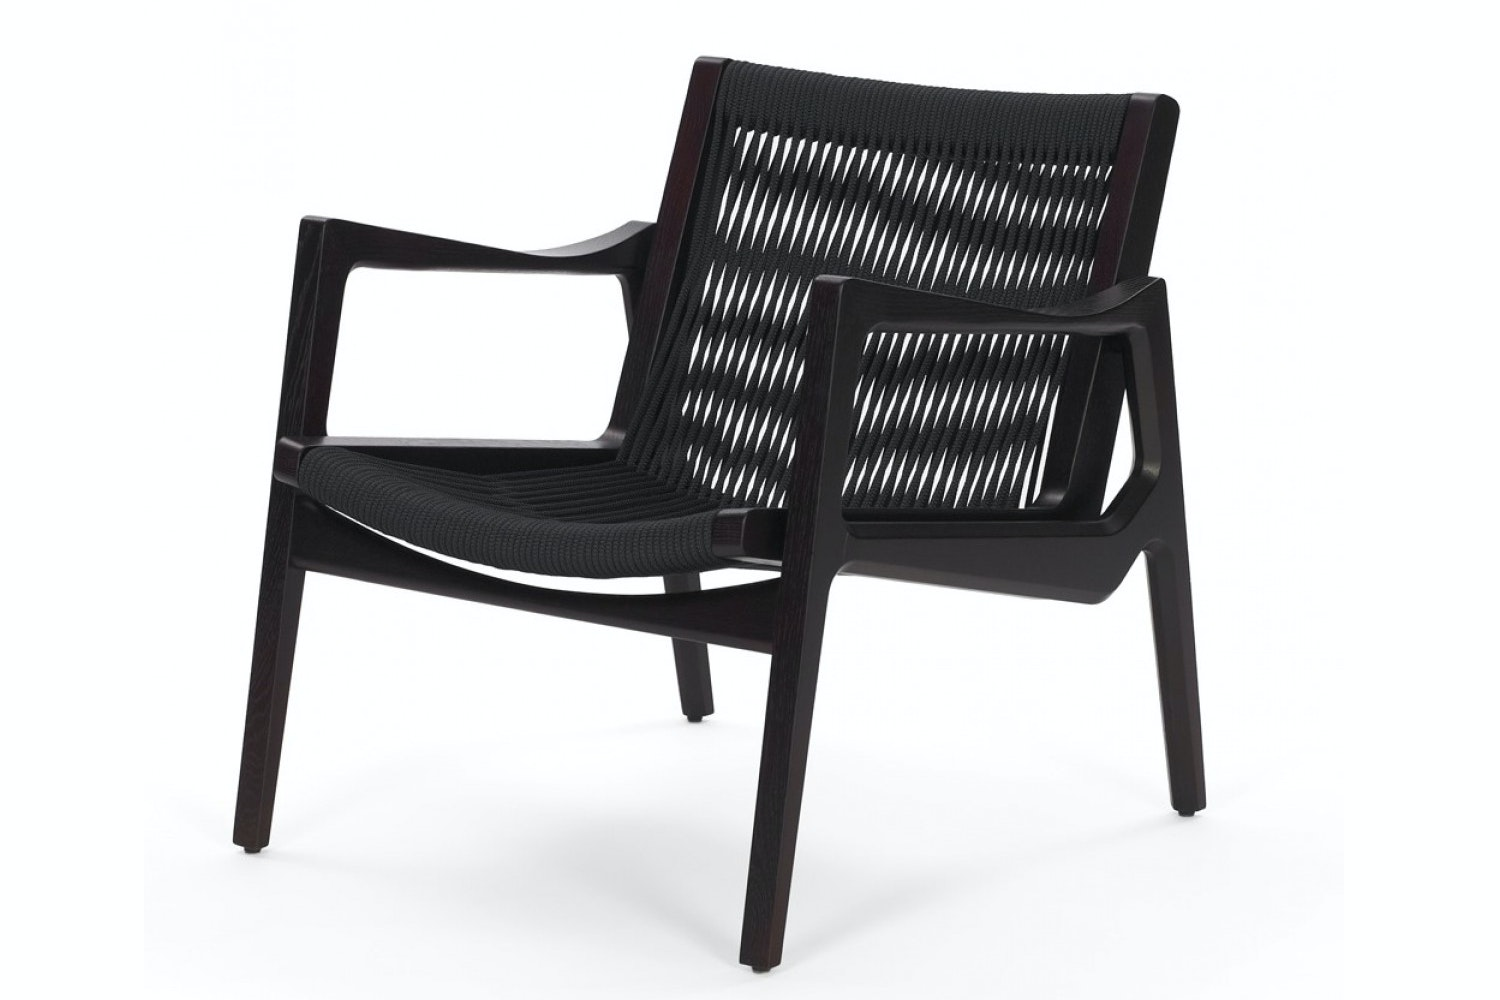 Euvira Lounge Chair by Jader Almeida for ClassiCon